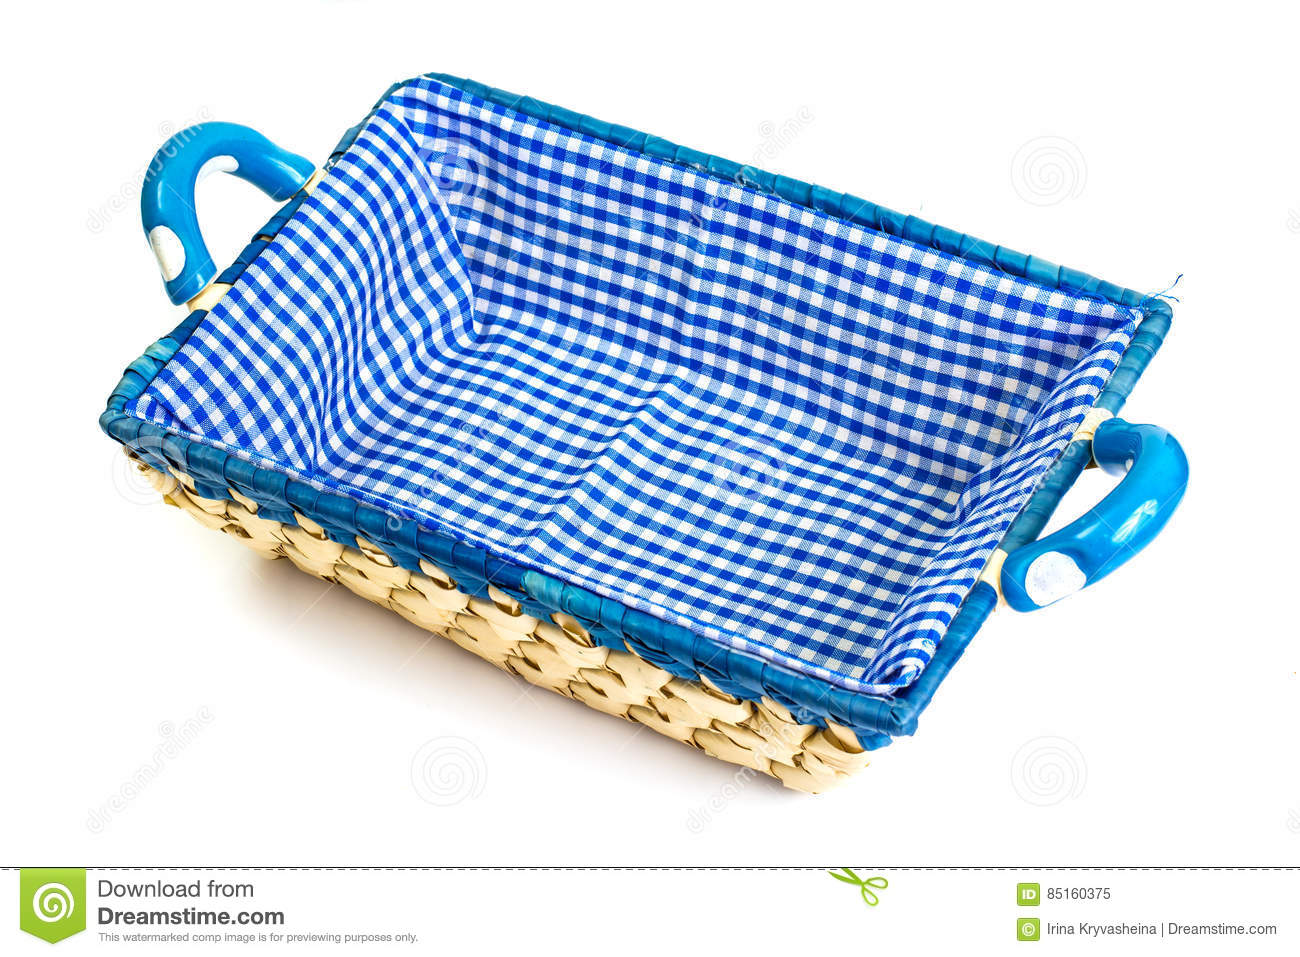 Handmade empty wicker basket with colored cloth on white background